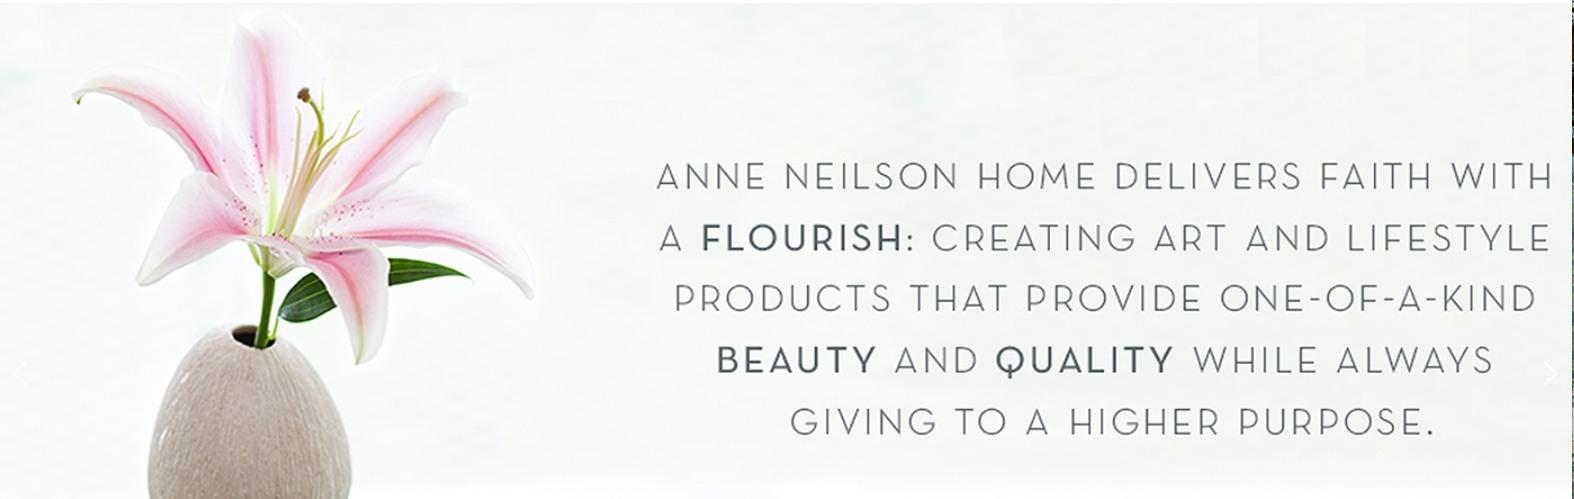 Anne Neilson lifestyle products slide 2